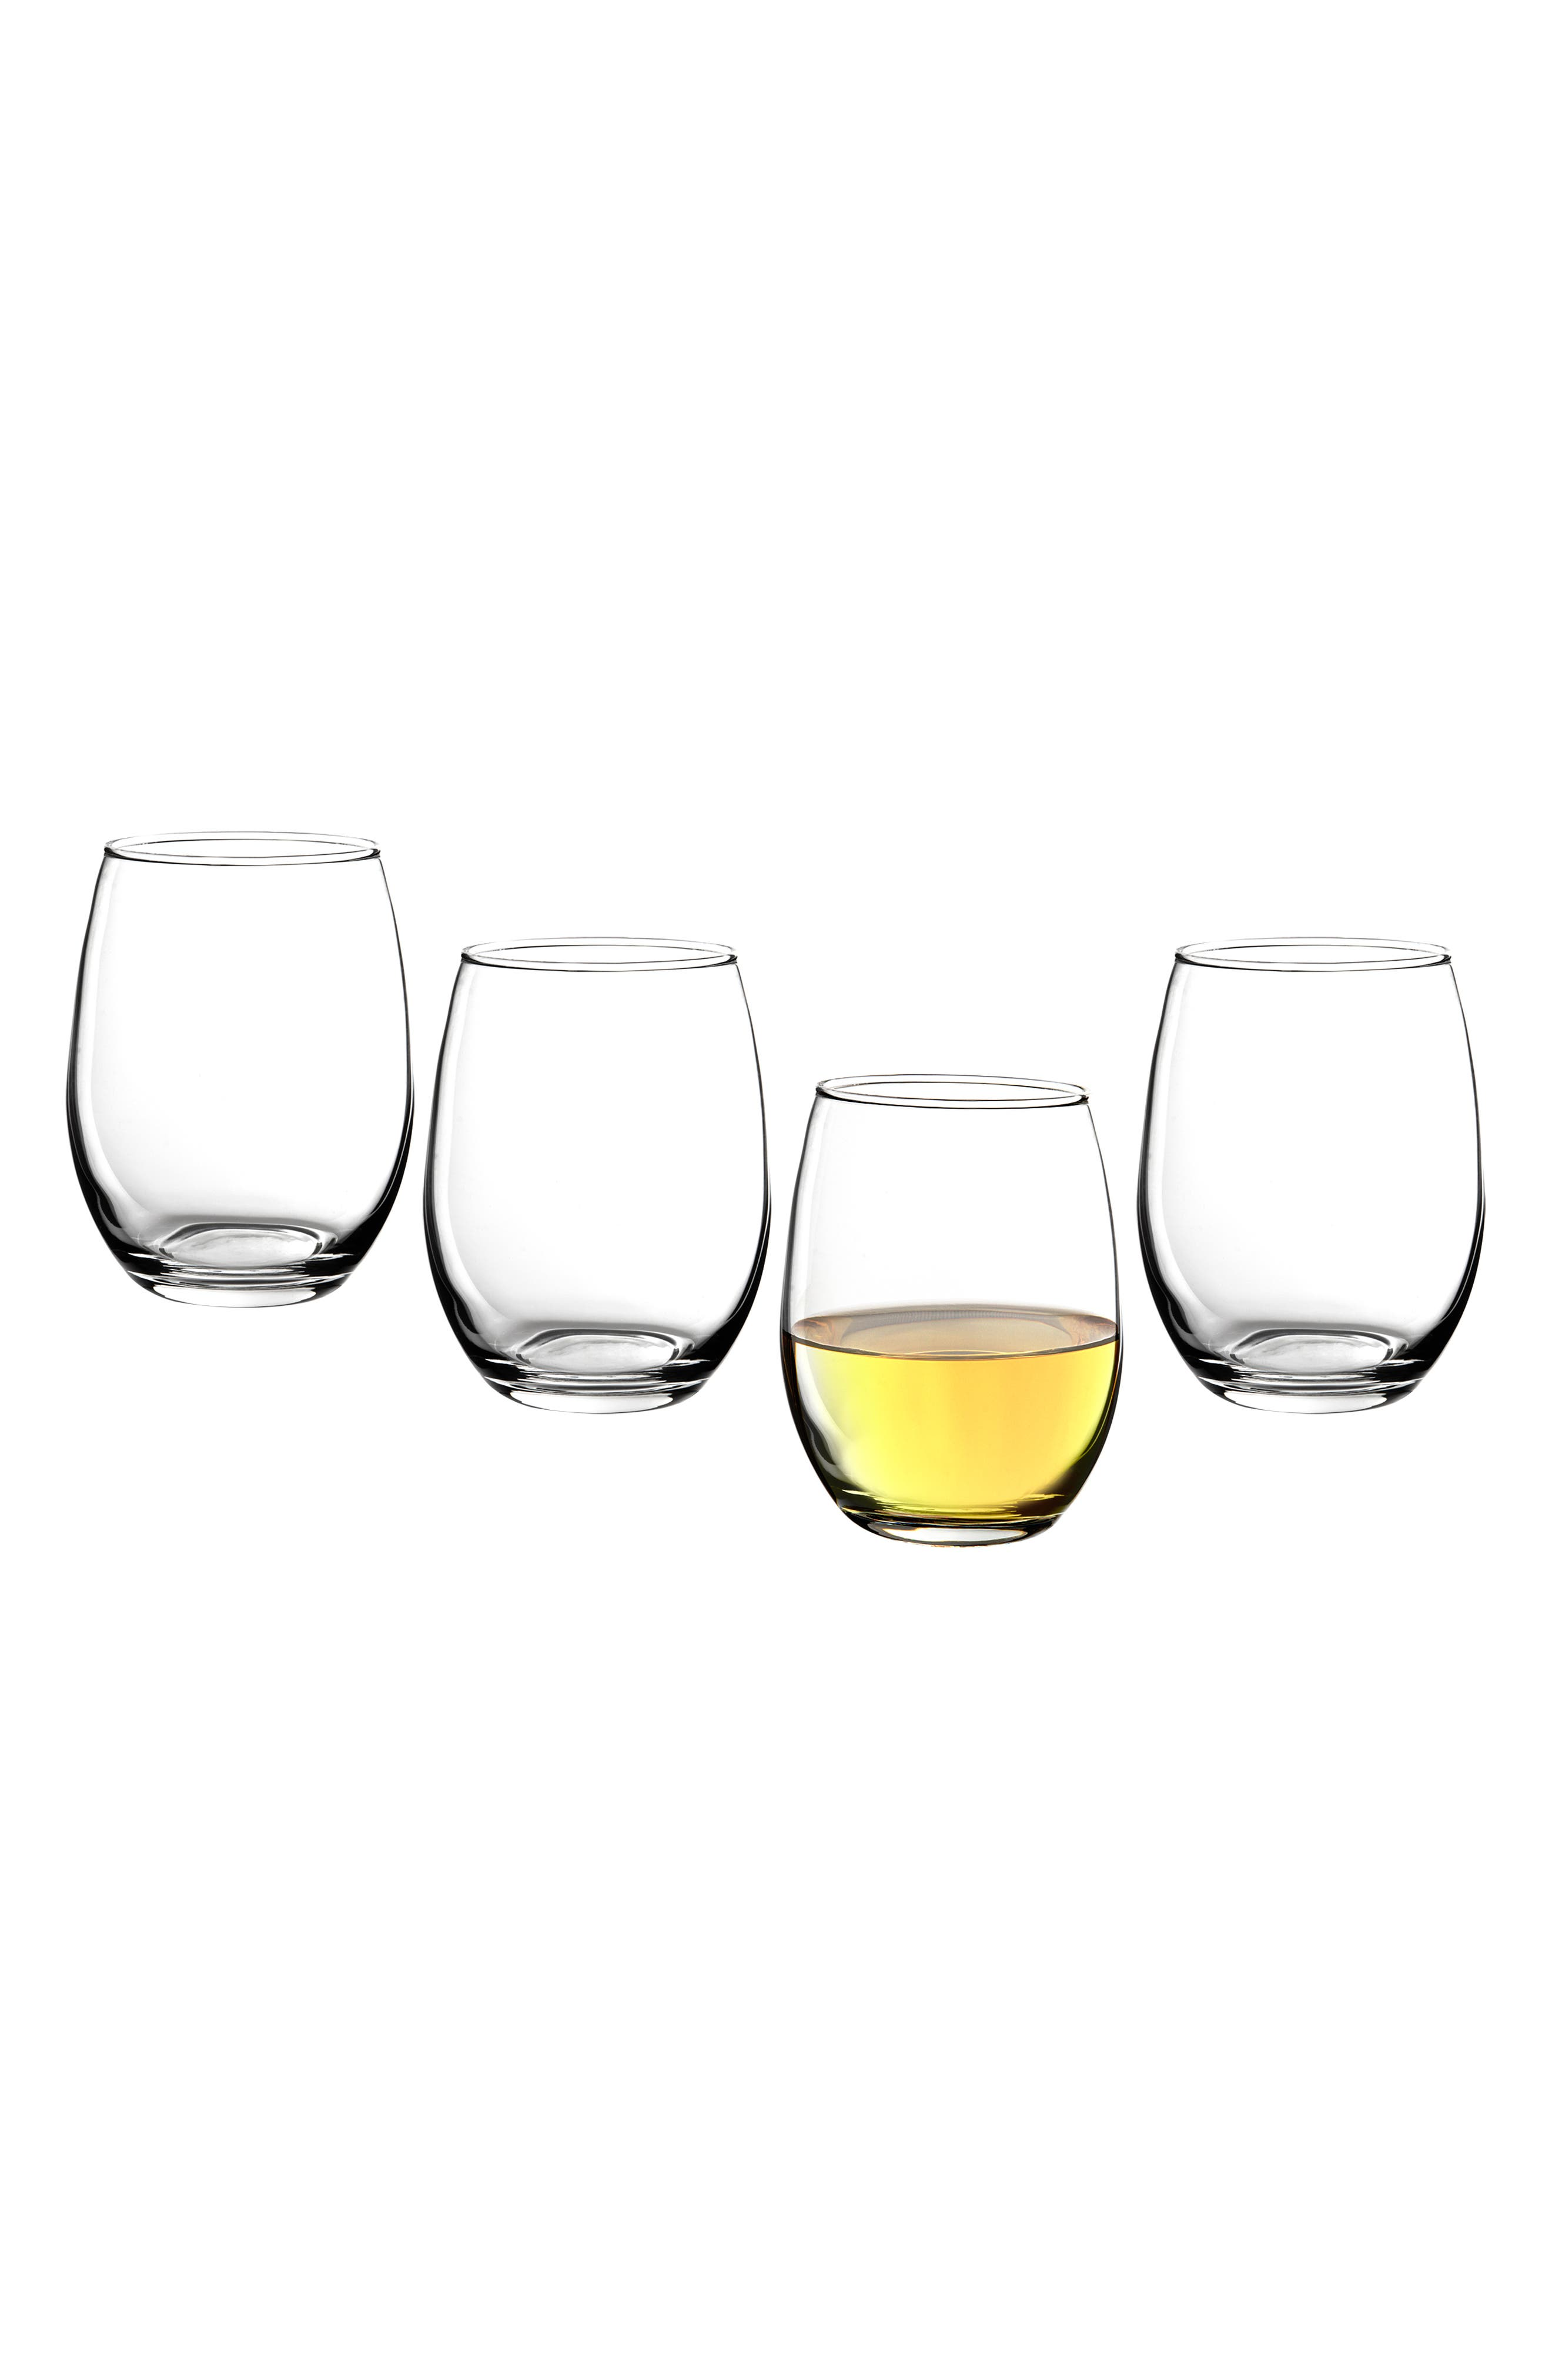 Estate Collection Set of 4 Monogram Stemless Wine Glasses,                             Main thumbnail 1, color,                             BLANK